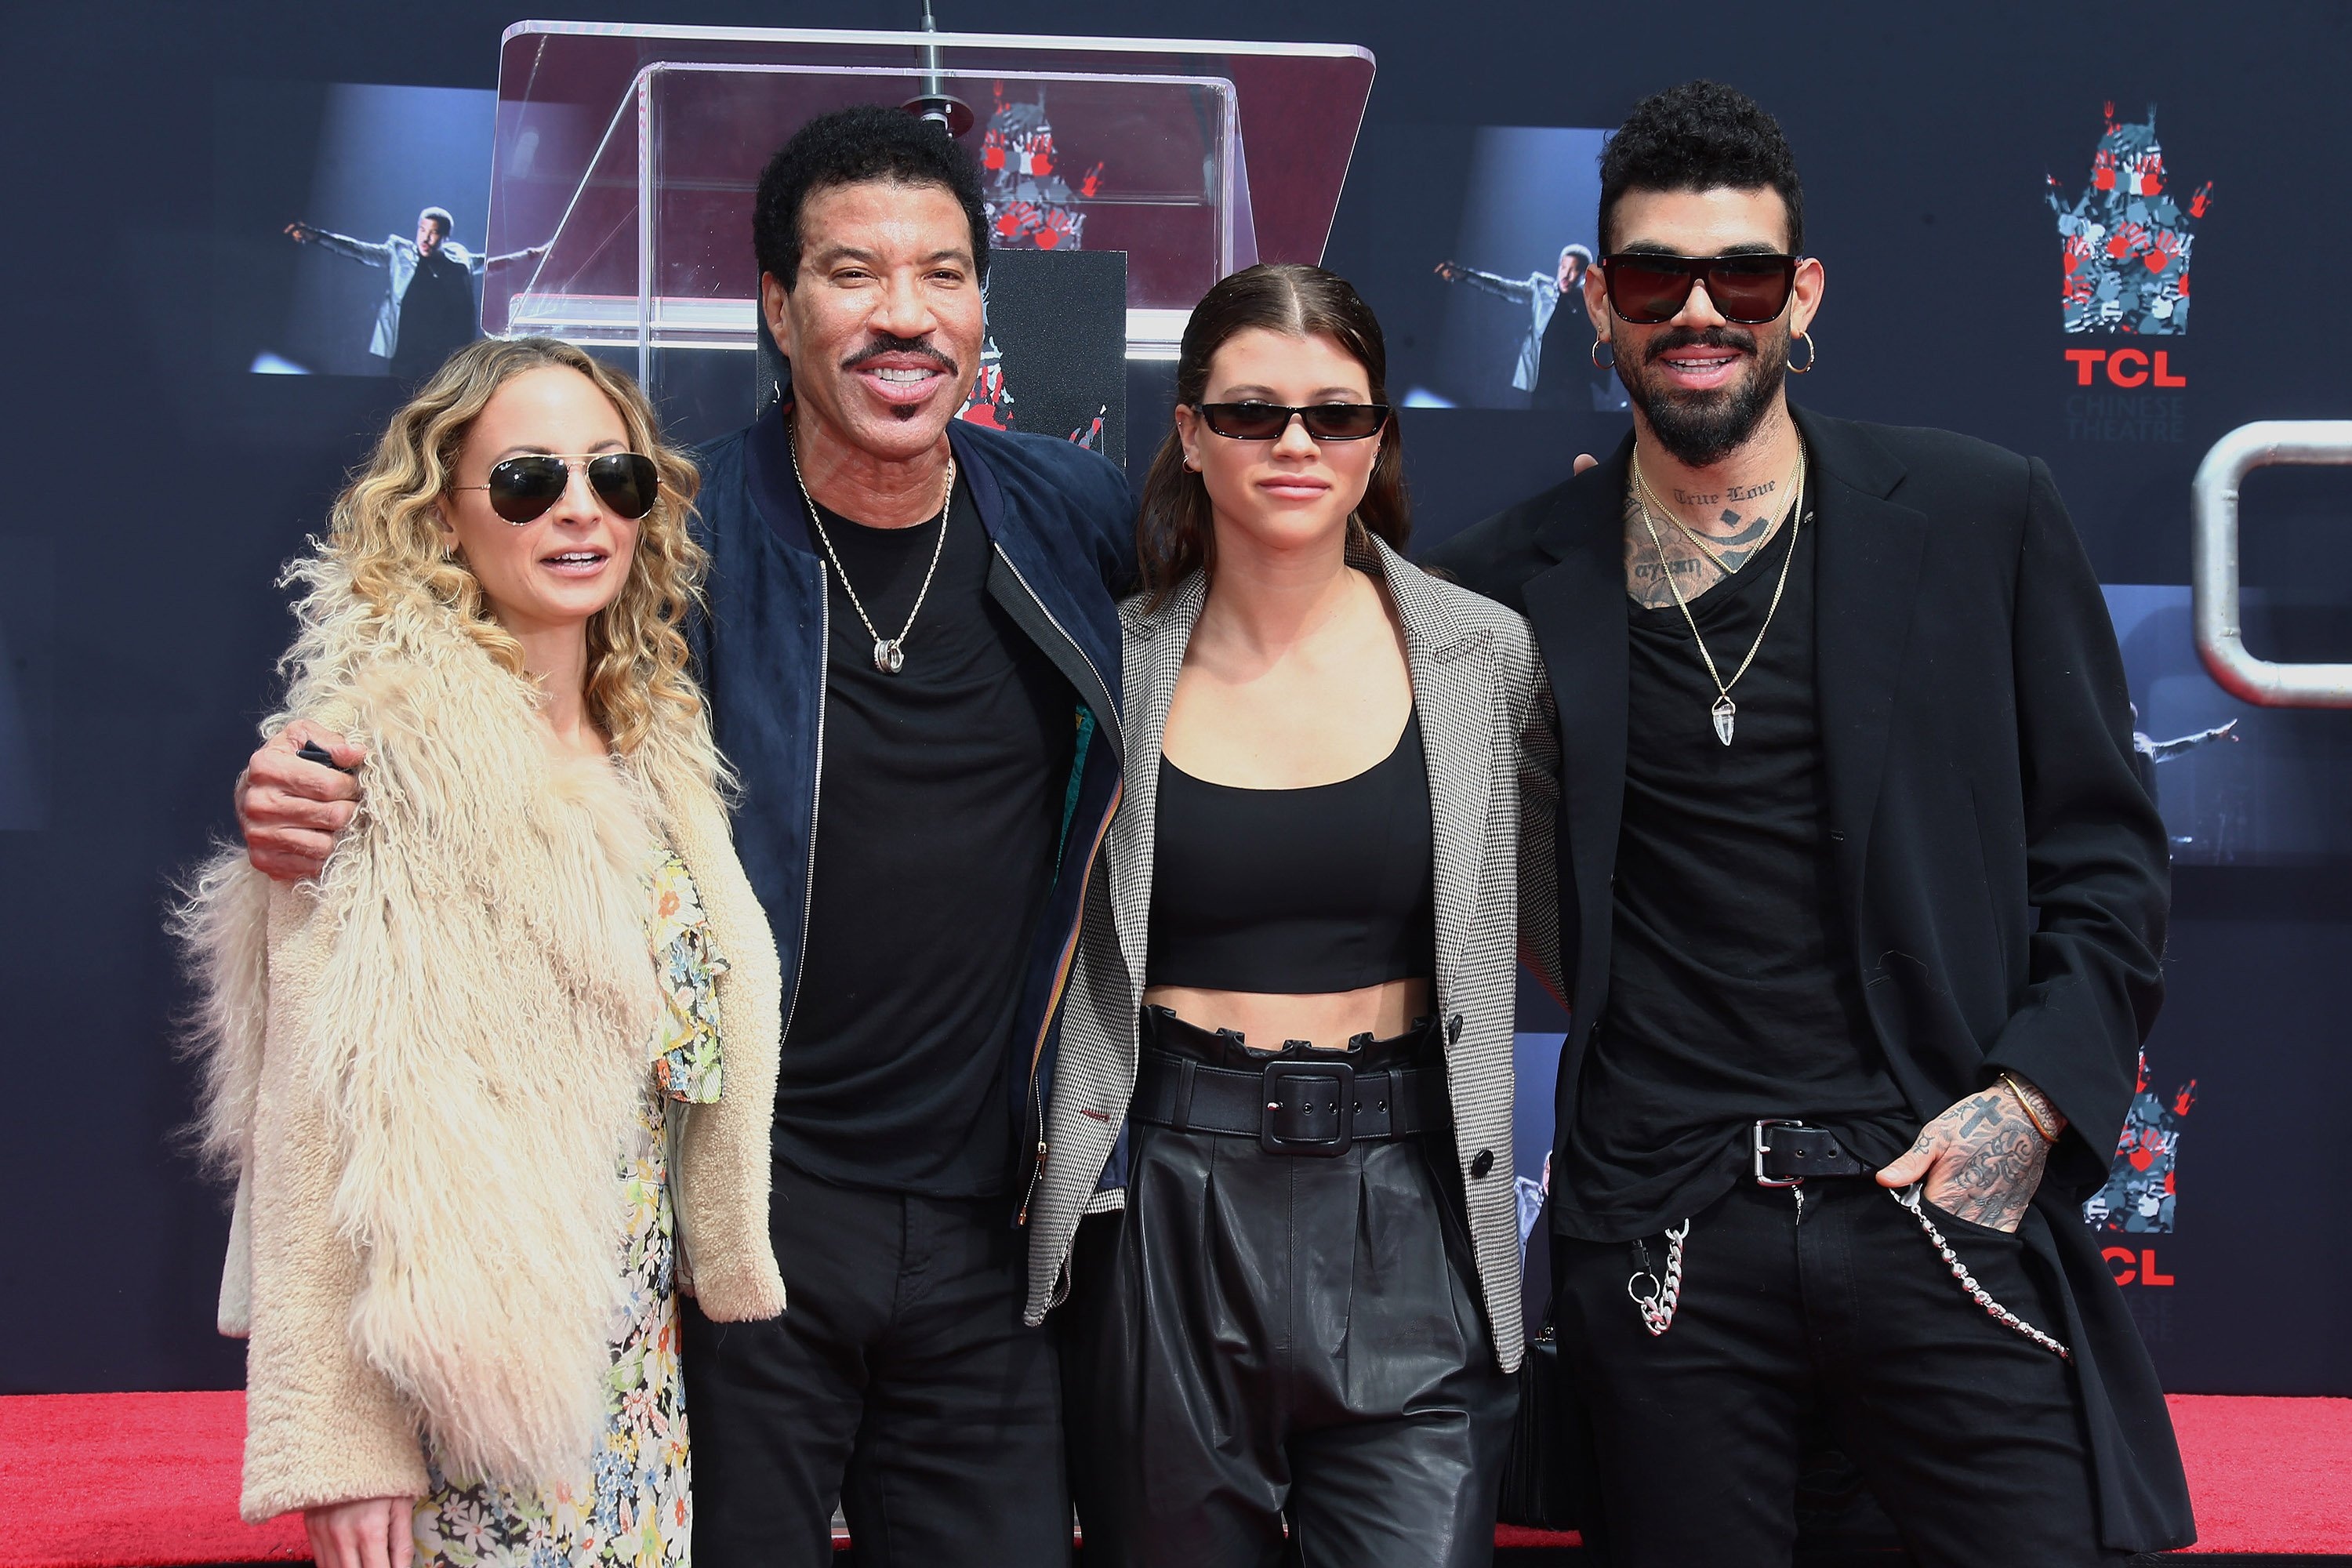 Nicole Richie, Lionel Richie, Sofia Richie and Miles Richie attend the Lionel Richie Hand And Footprint Ceremony at TCL Chinese Theatre on March 7, 2018 | Photo: GettyImages